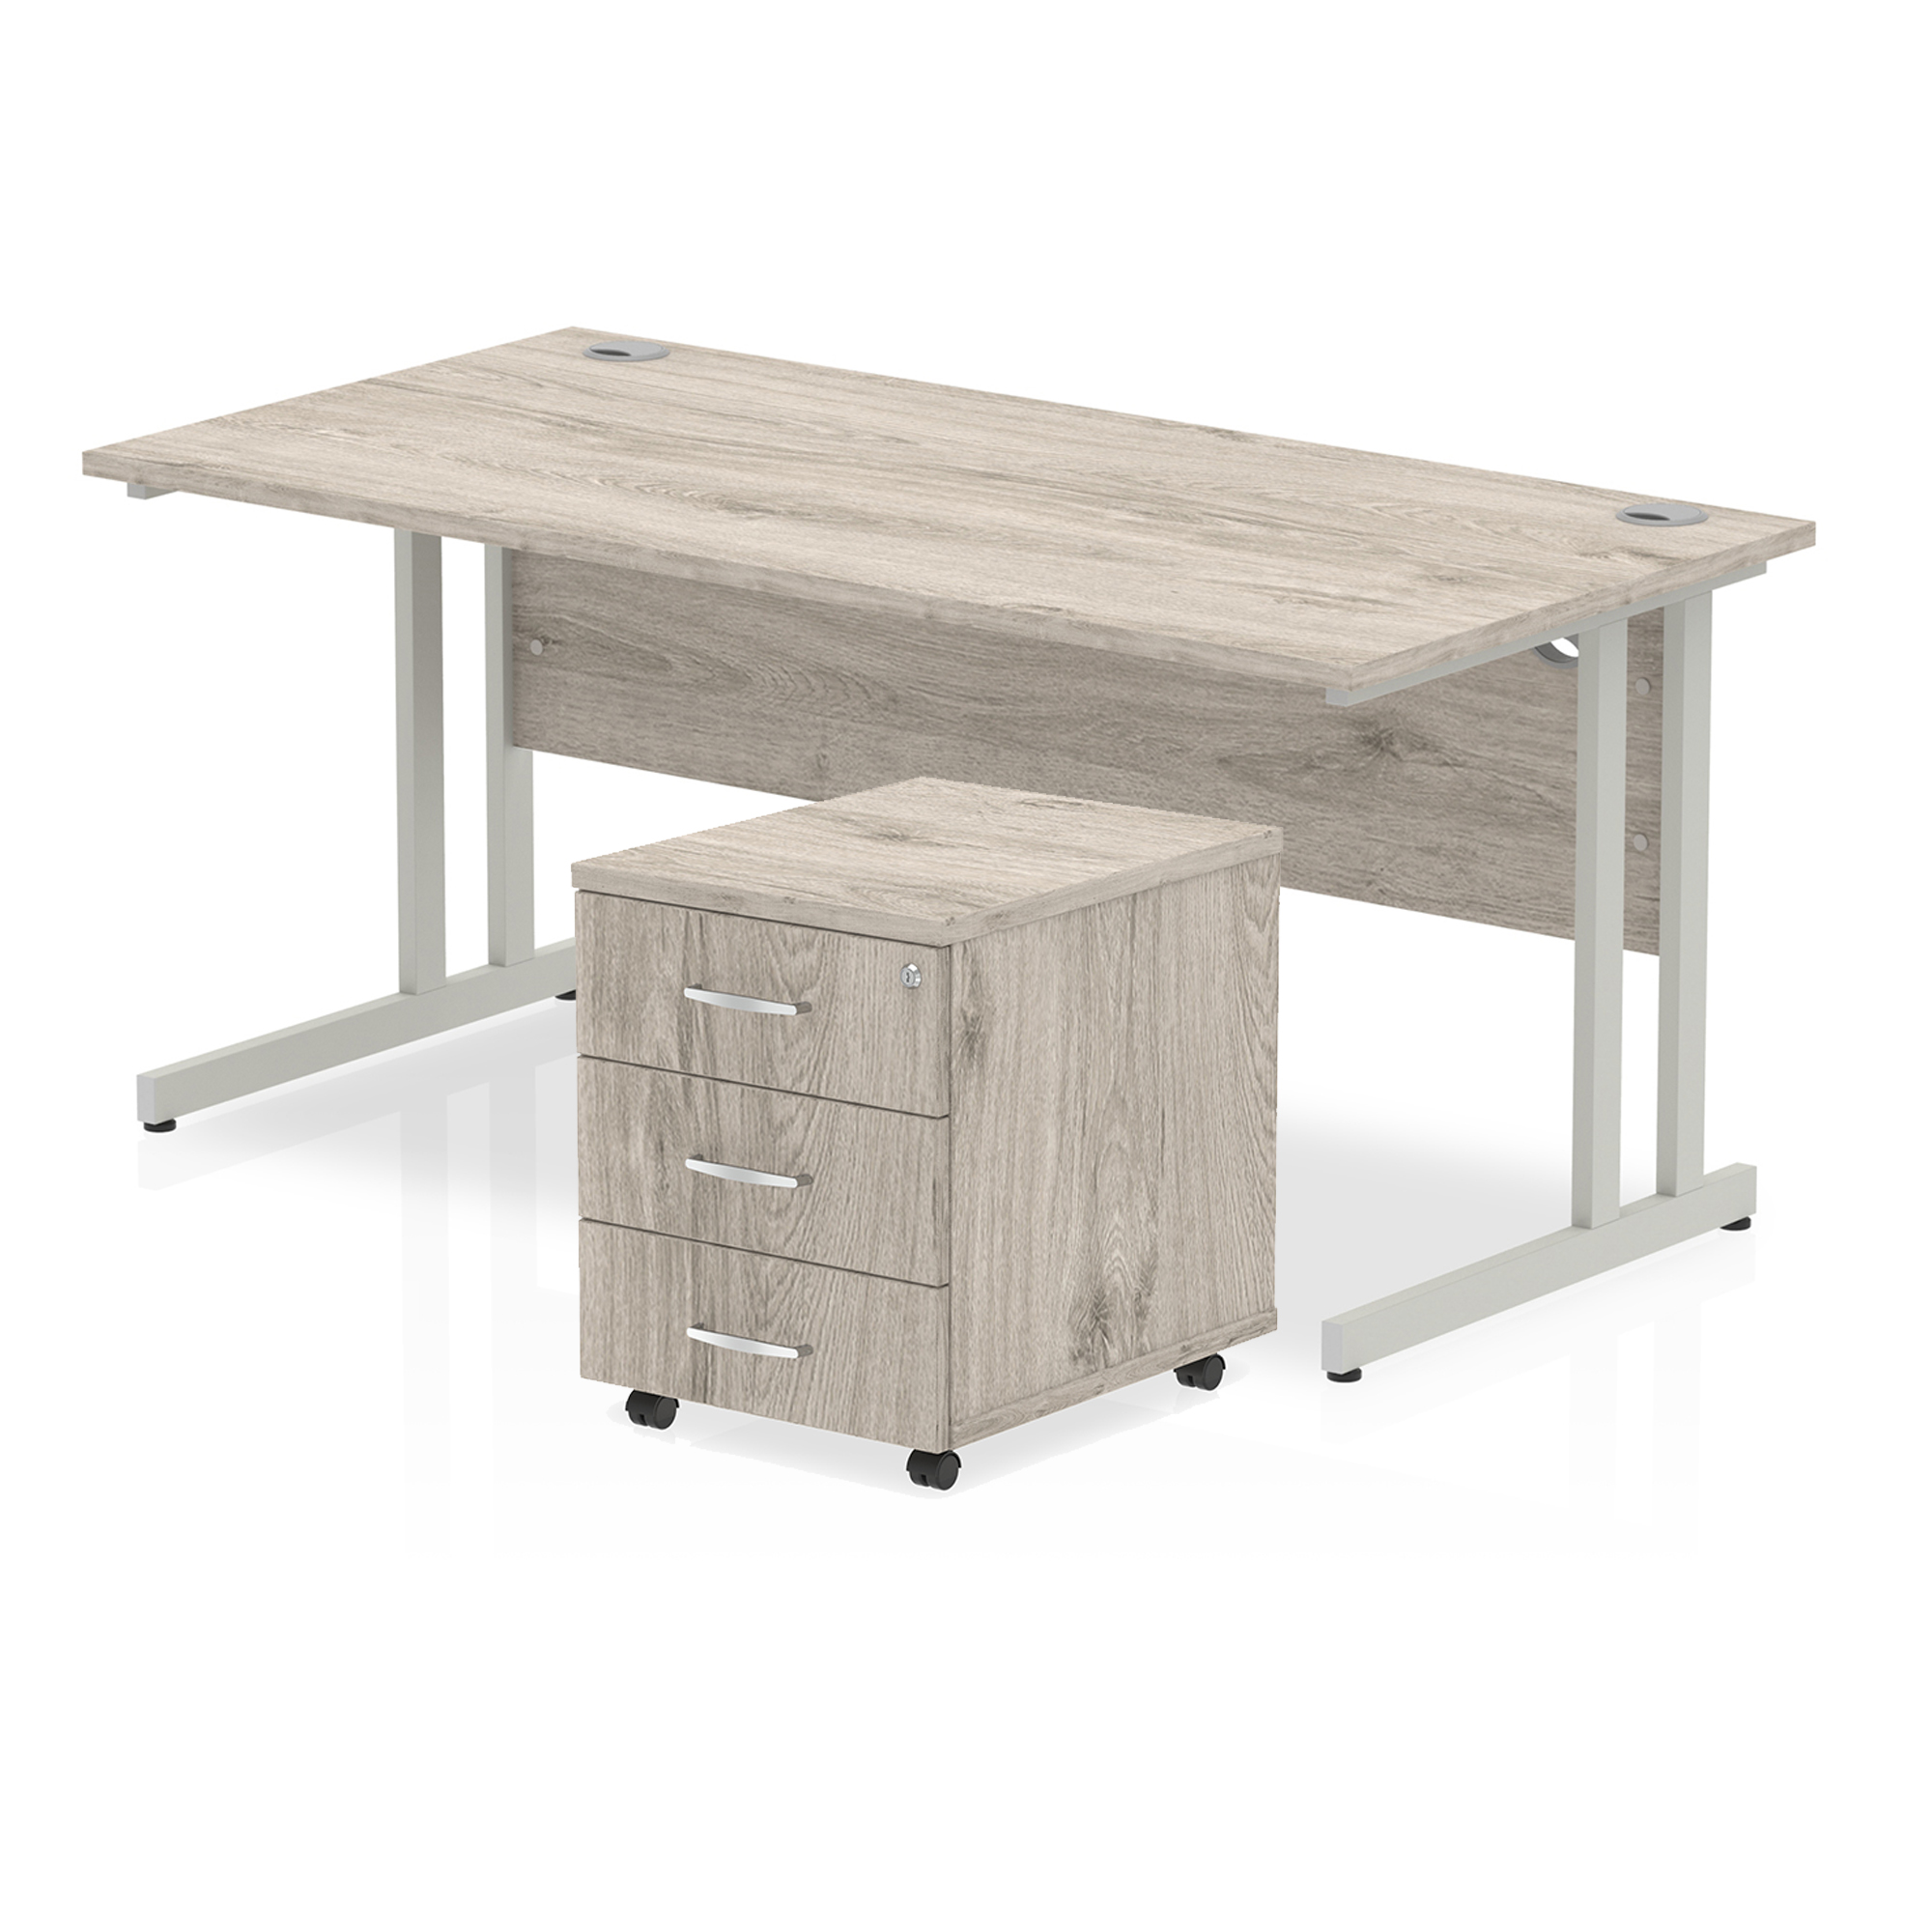 Desks Trexus Cantilever Desk 1600x800 & 3 Drawer Pedestal Grey Oak Bundle Offer Feb-Apr 2020